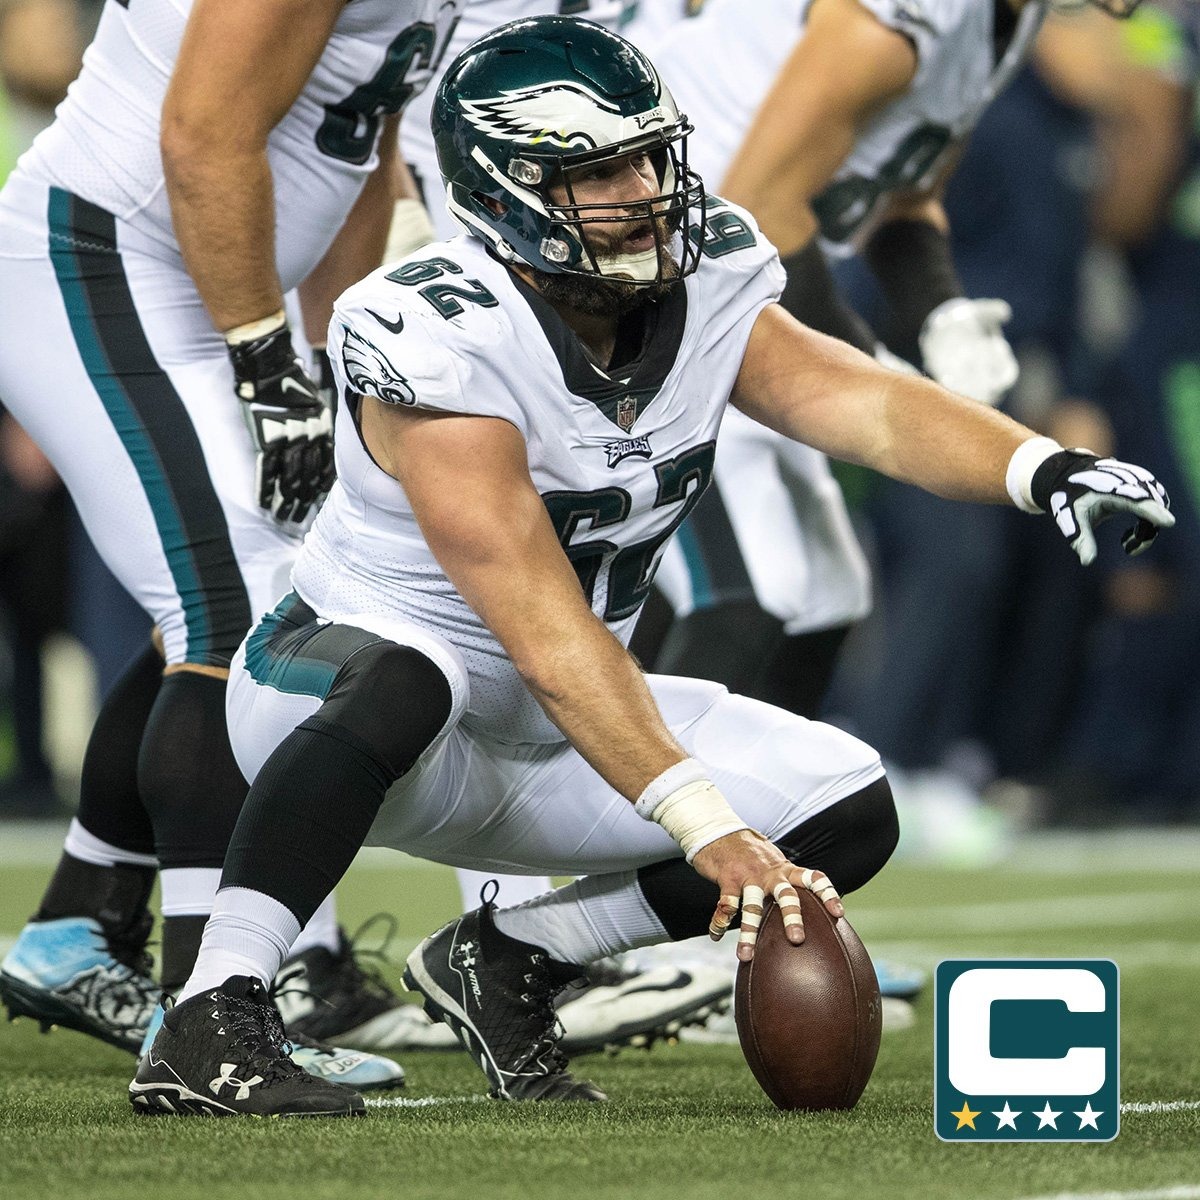 Jason Kelce and Donnie Jones will serve as additional captains today for #DALvsPHI.  #FlyEaglesFly https://t.co/xGSk4CjPP5